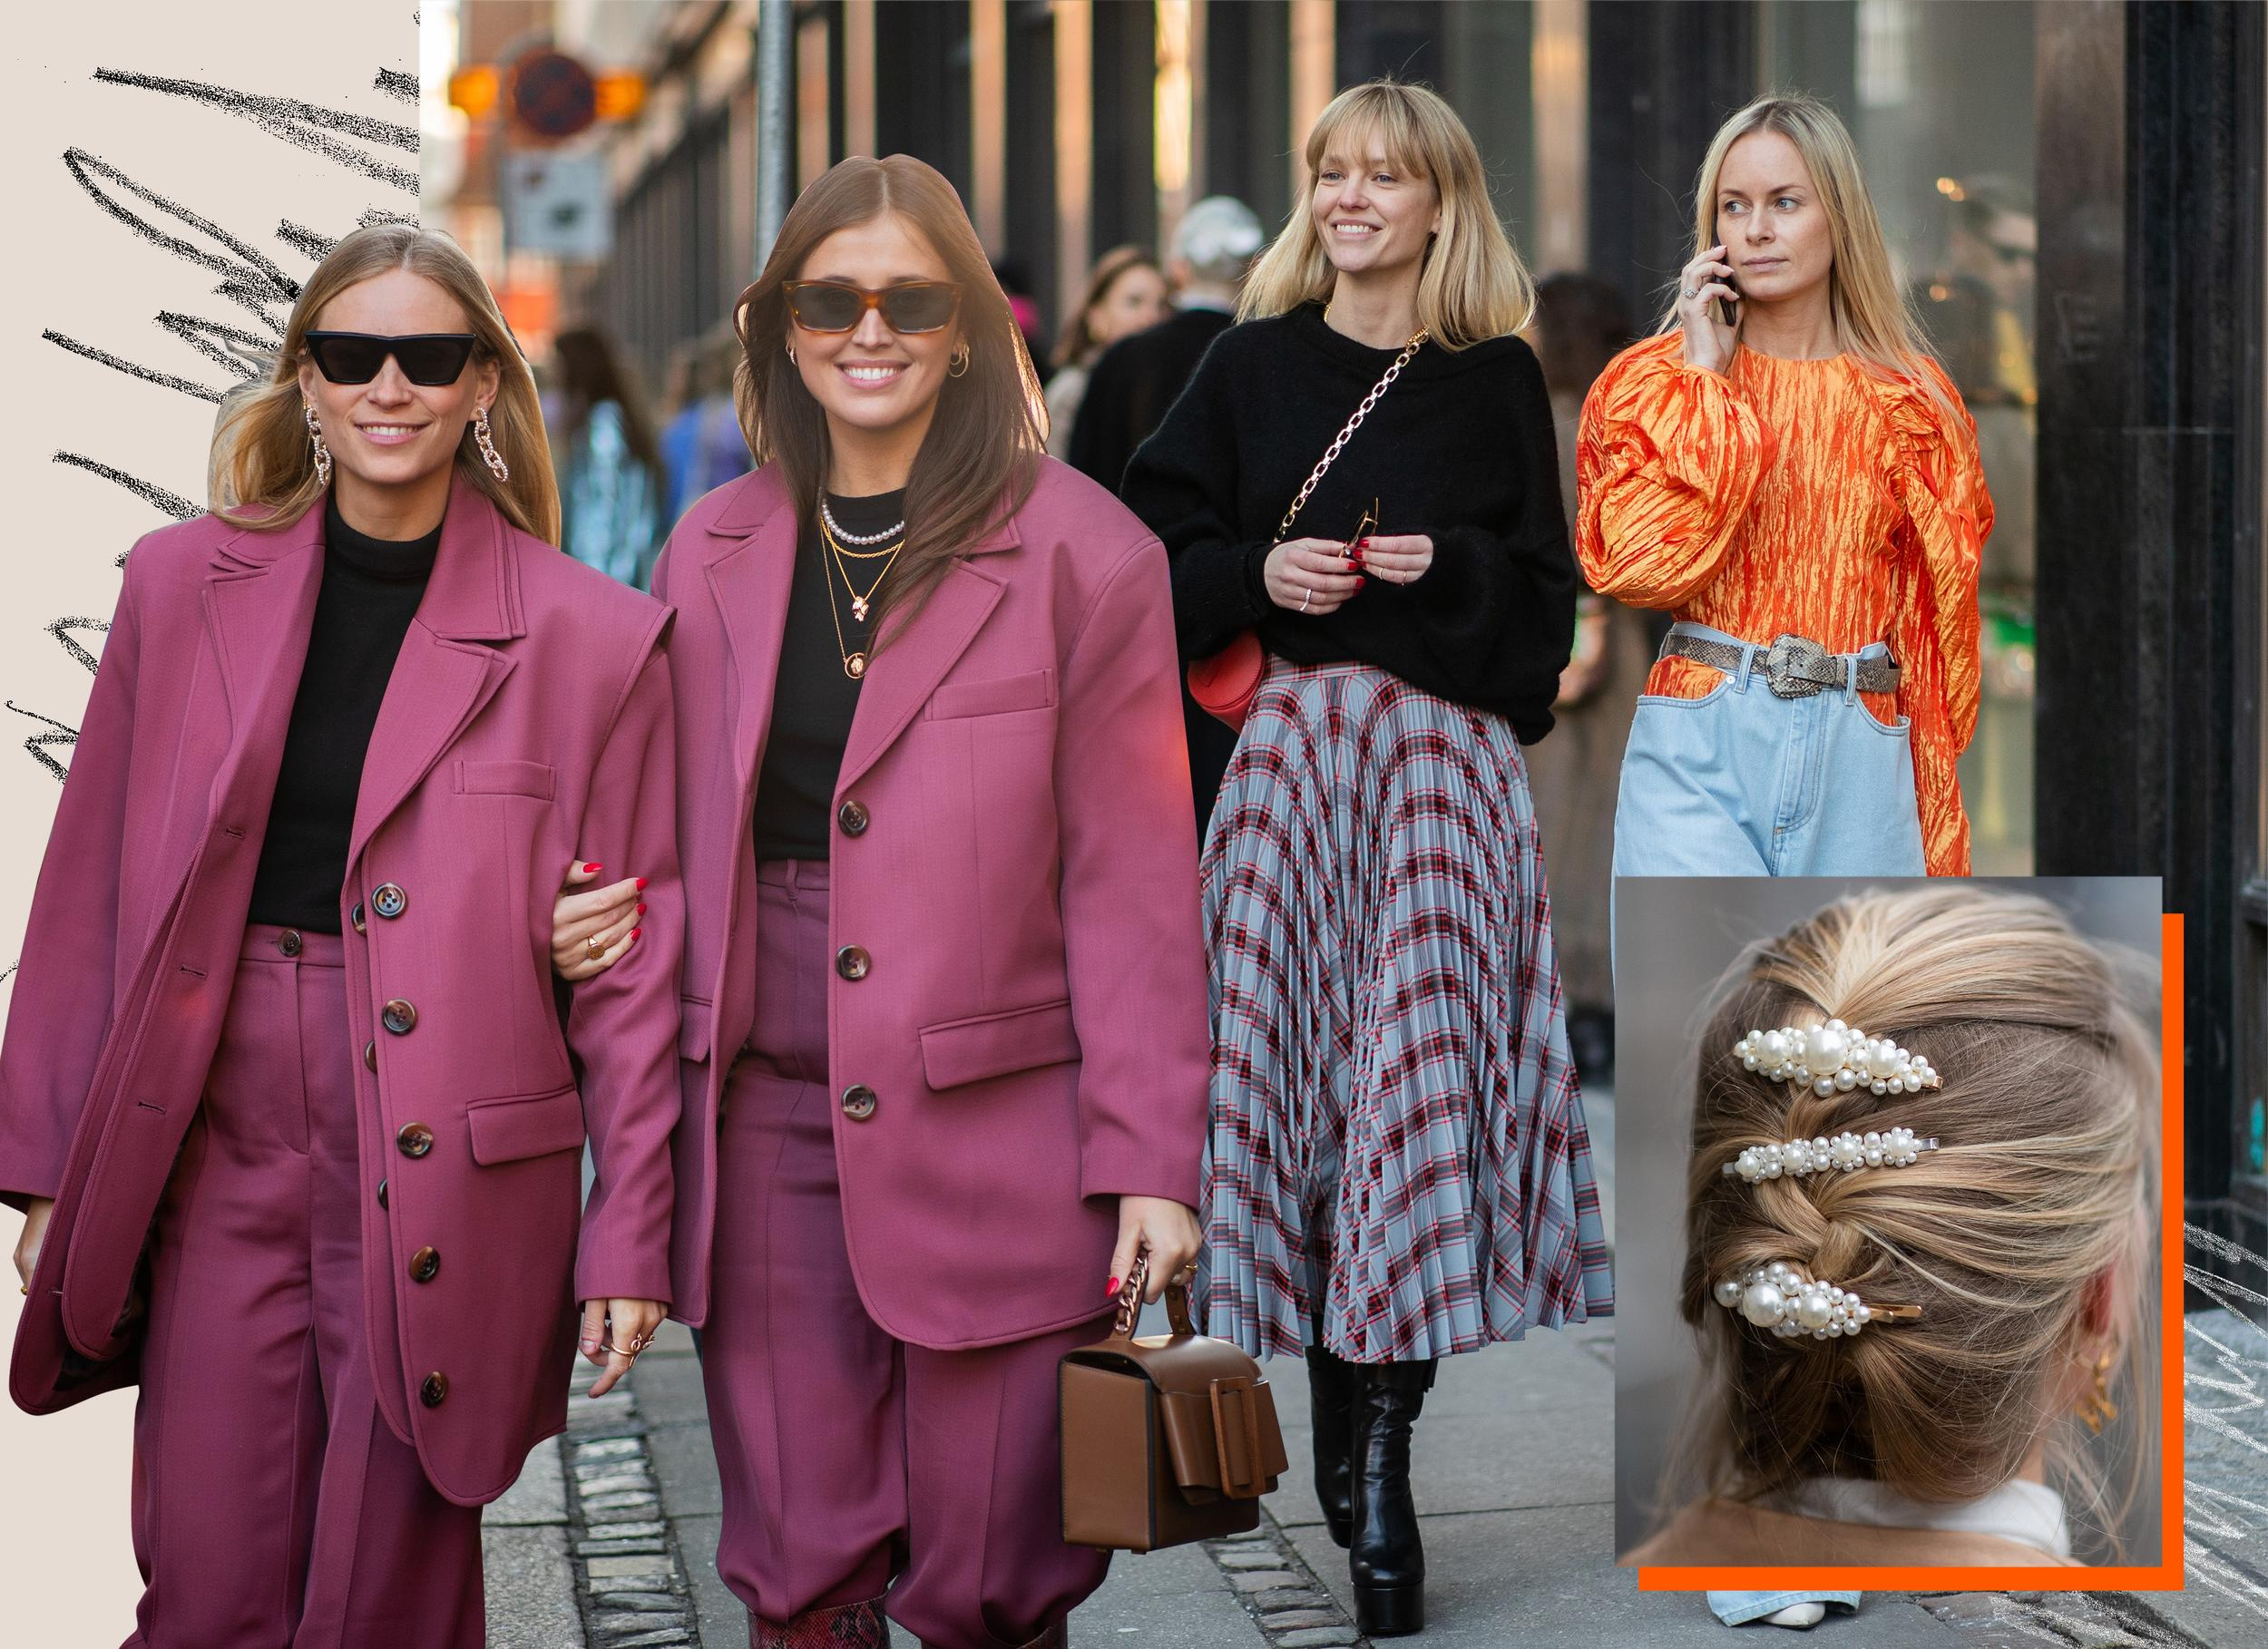 5 Trends the Fashion World Is Obsessing Over (from Barrettes to Puffed Sleeves)